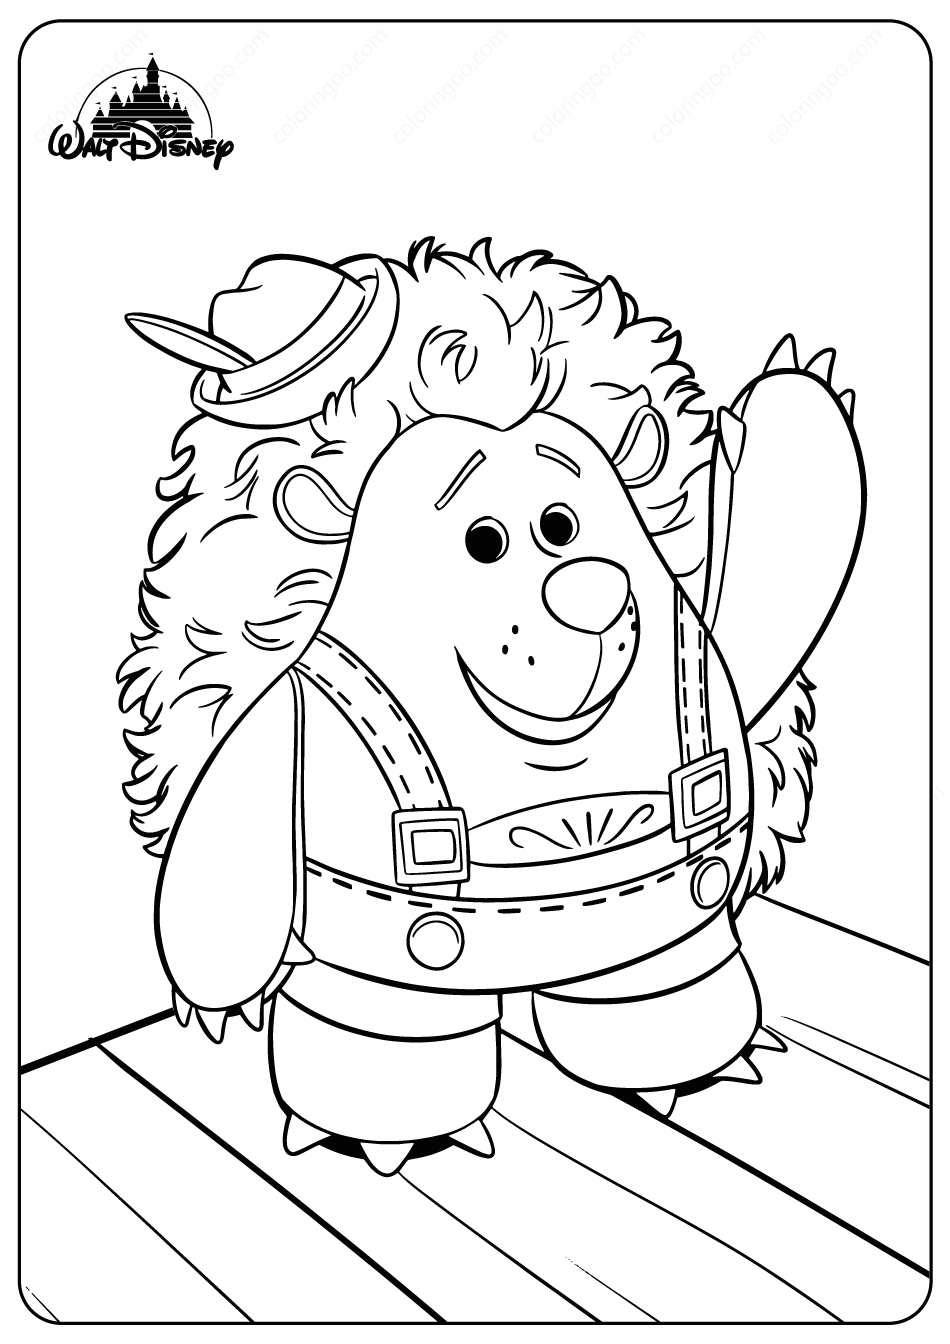 Mr Prinklepants Coloring Pages Coloring Pages Disney Toys Disney Drawings